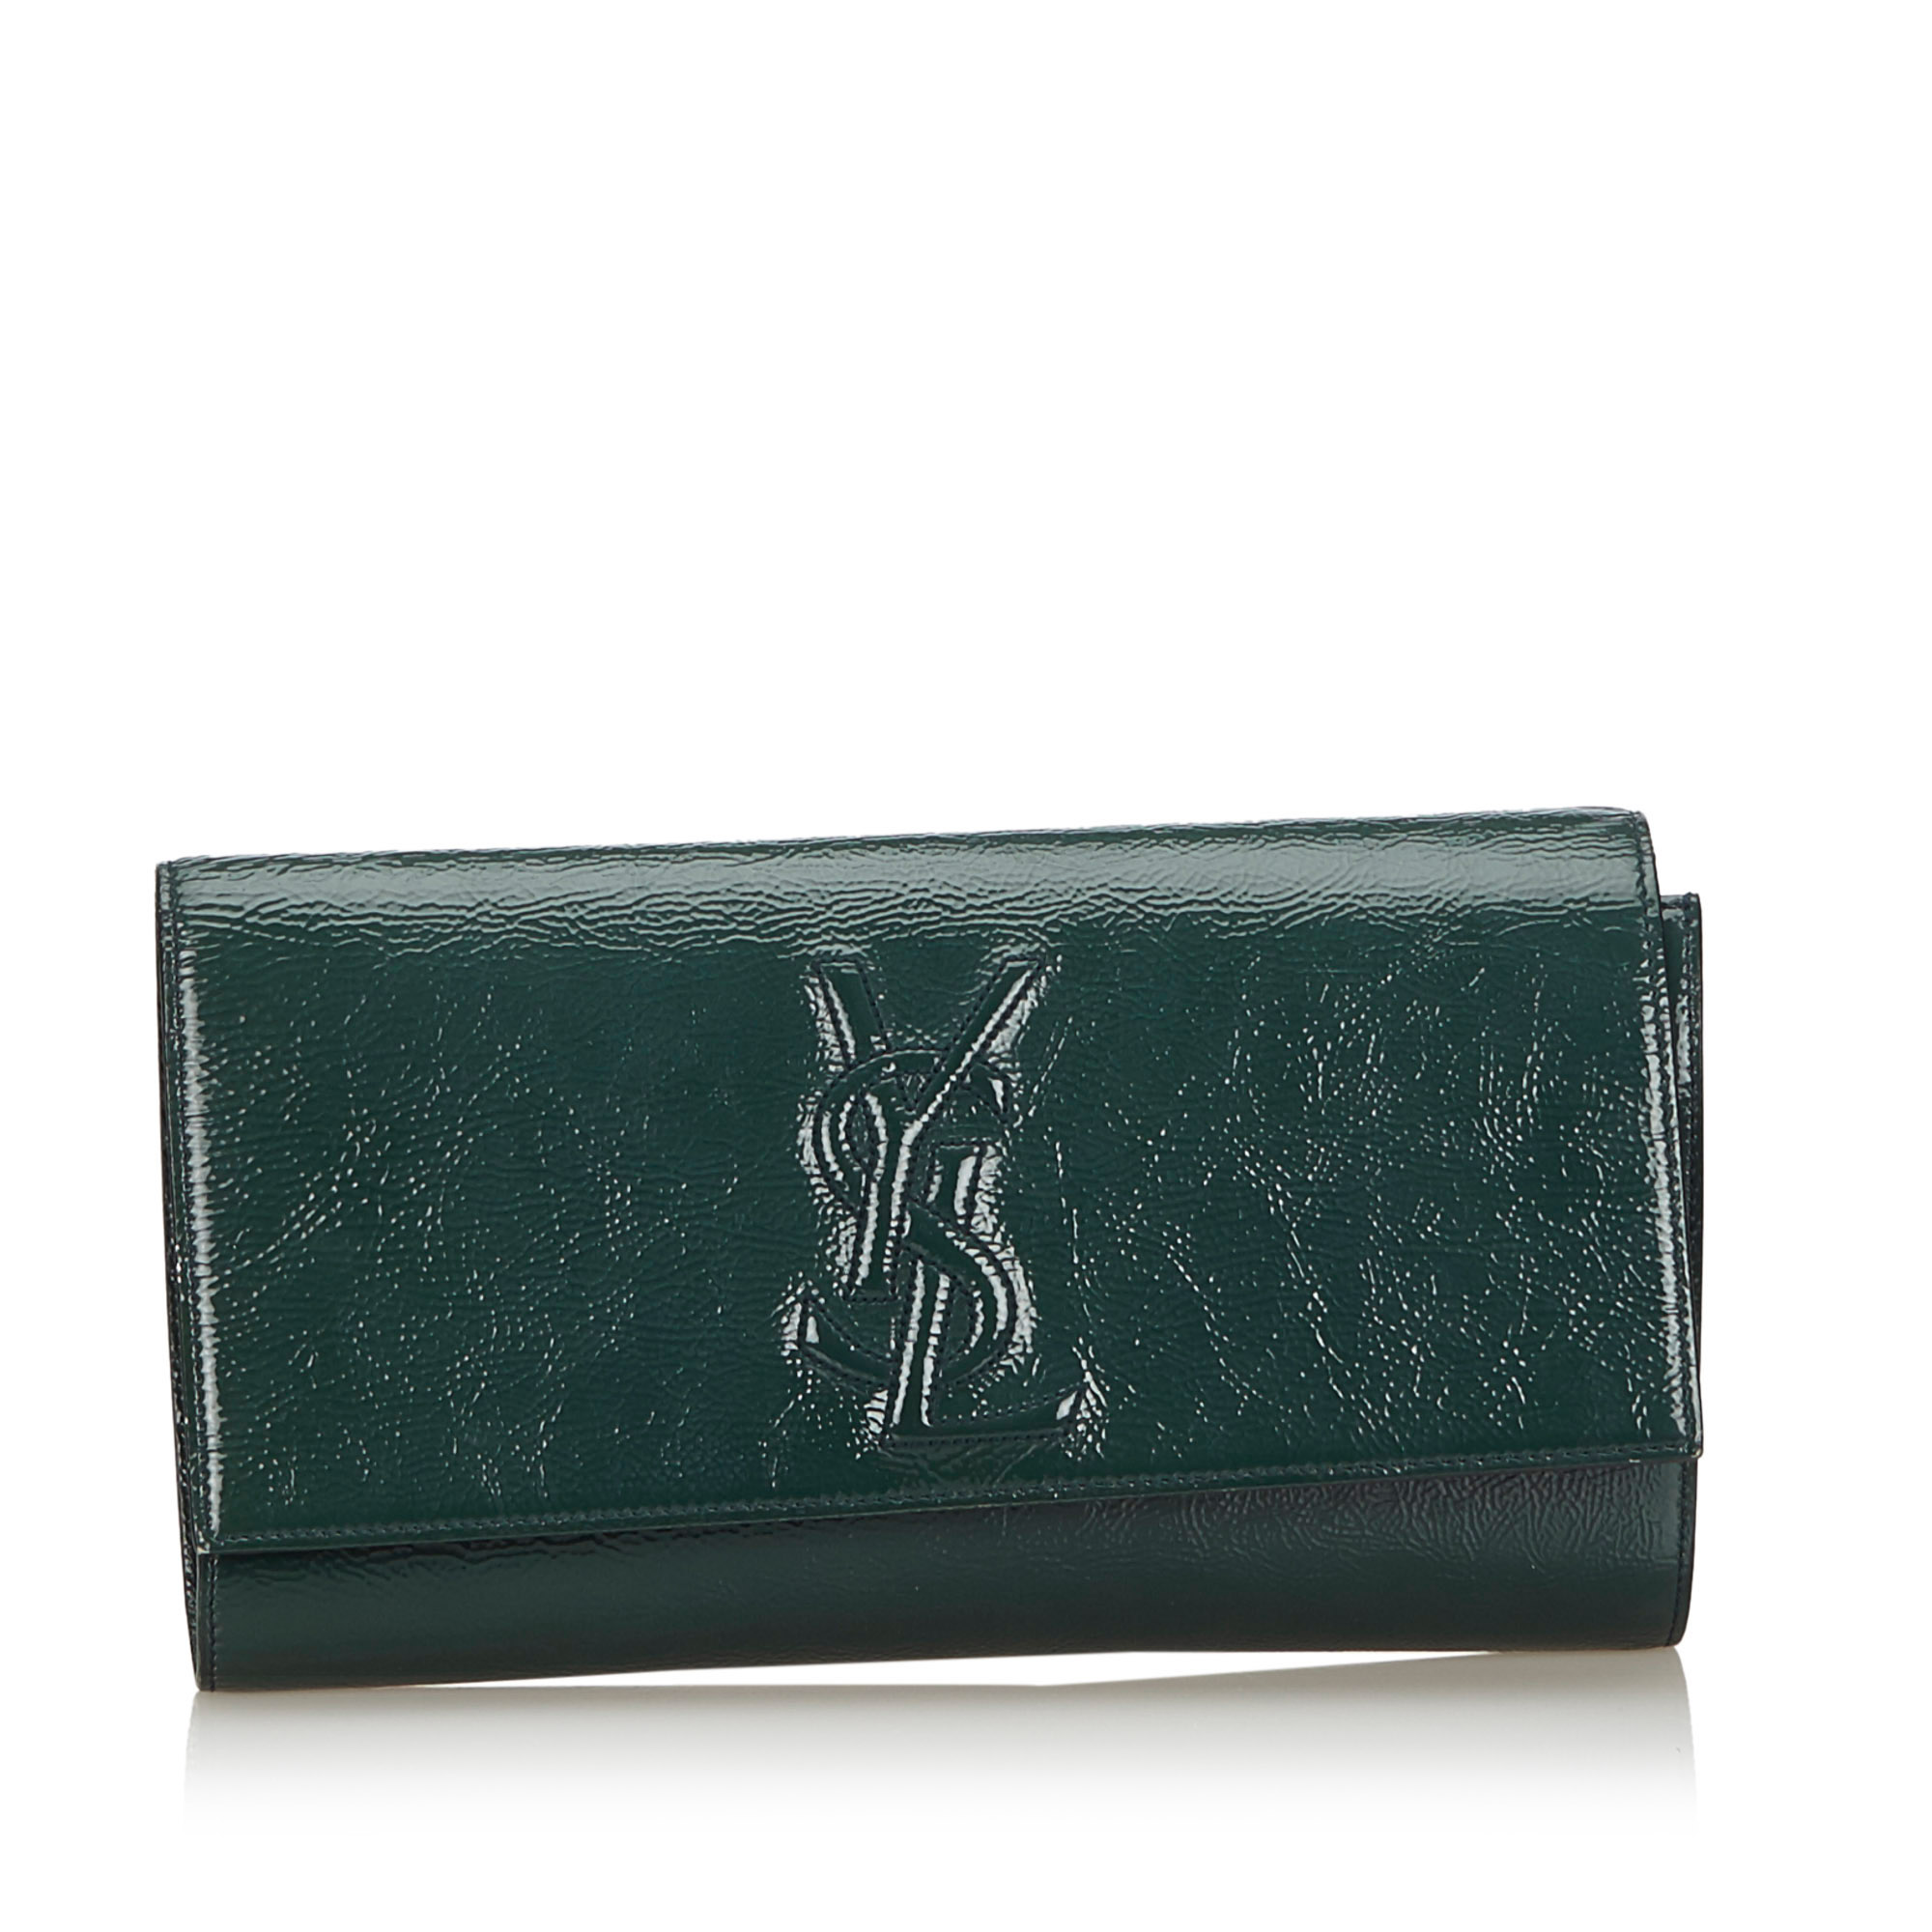 top-rated professional best shoes selected material Details about Pre-Loved YSL Green Patent Leather Belle du Jour Clutch France